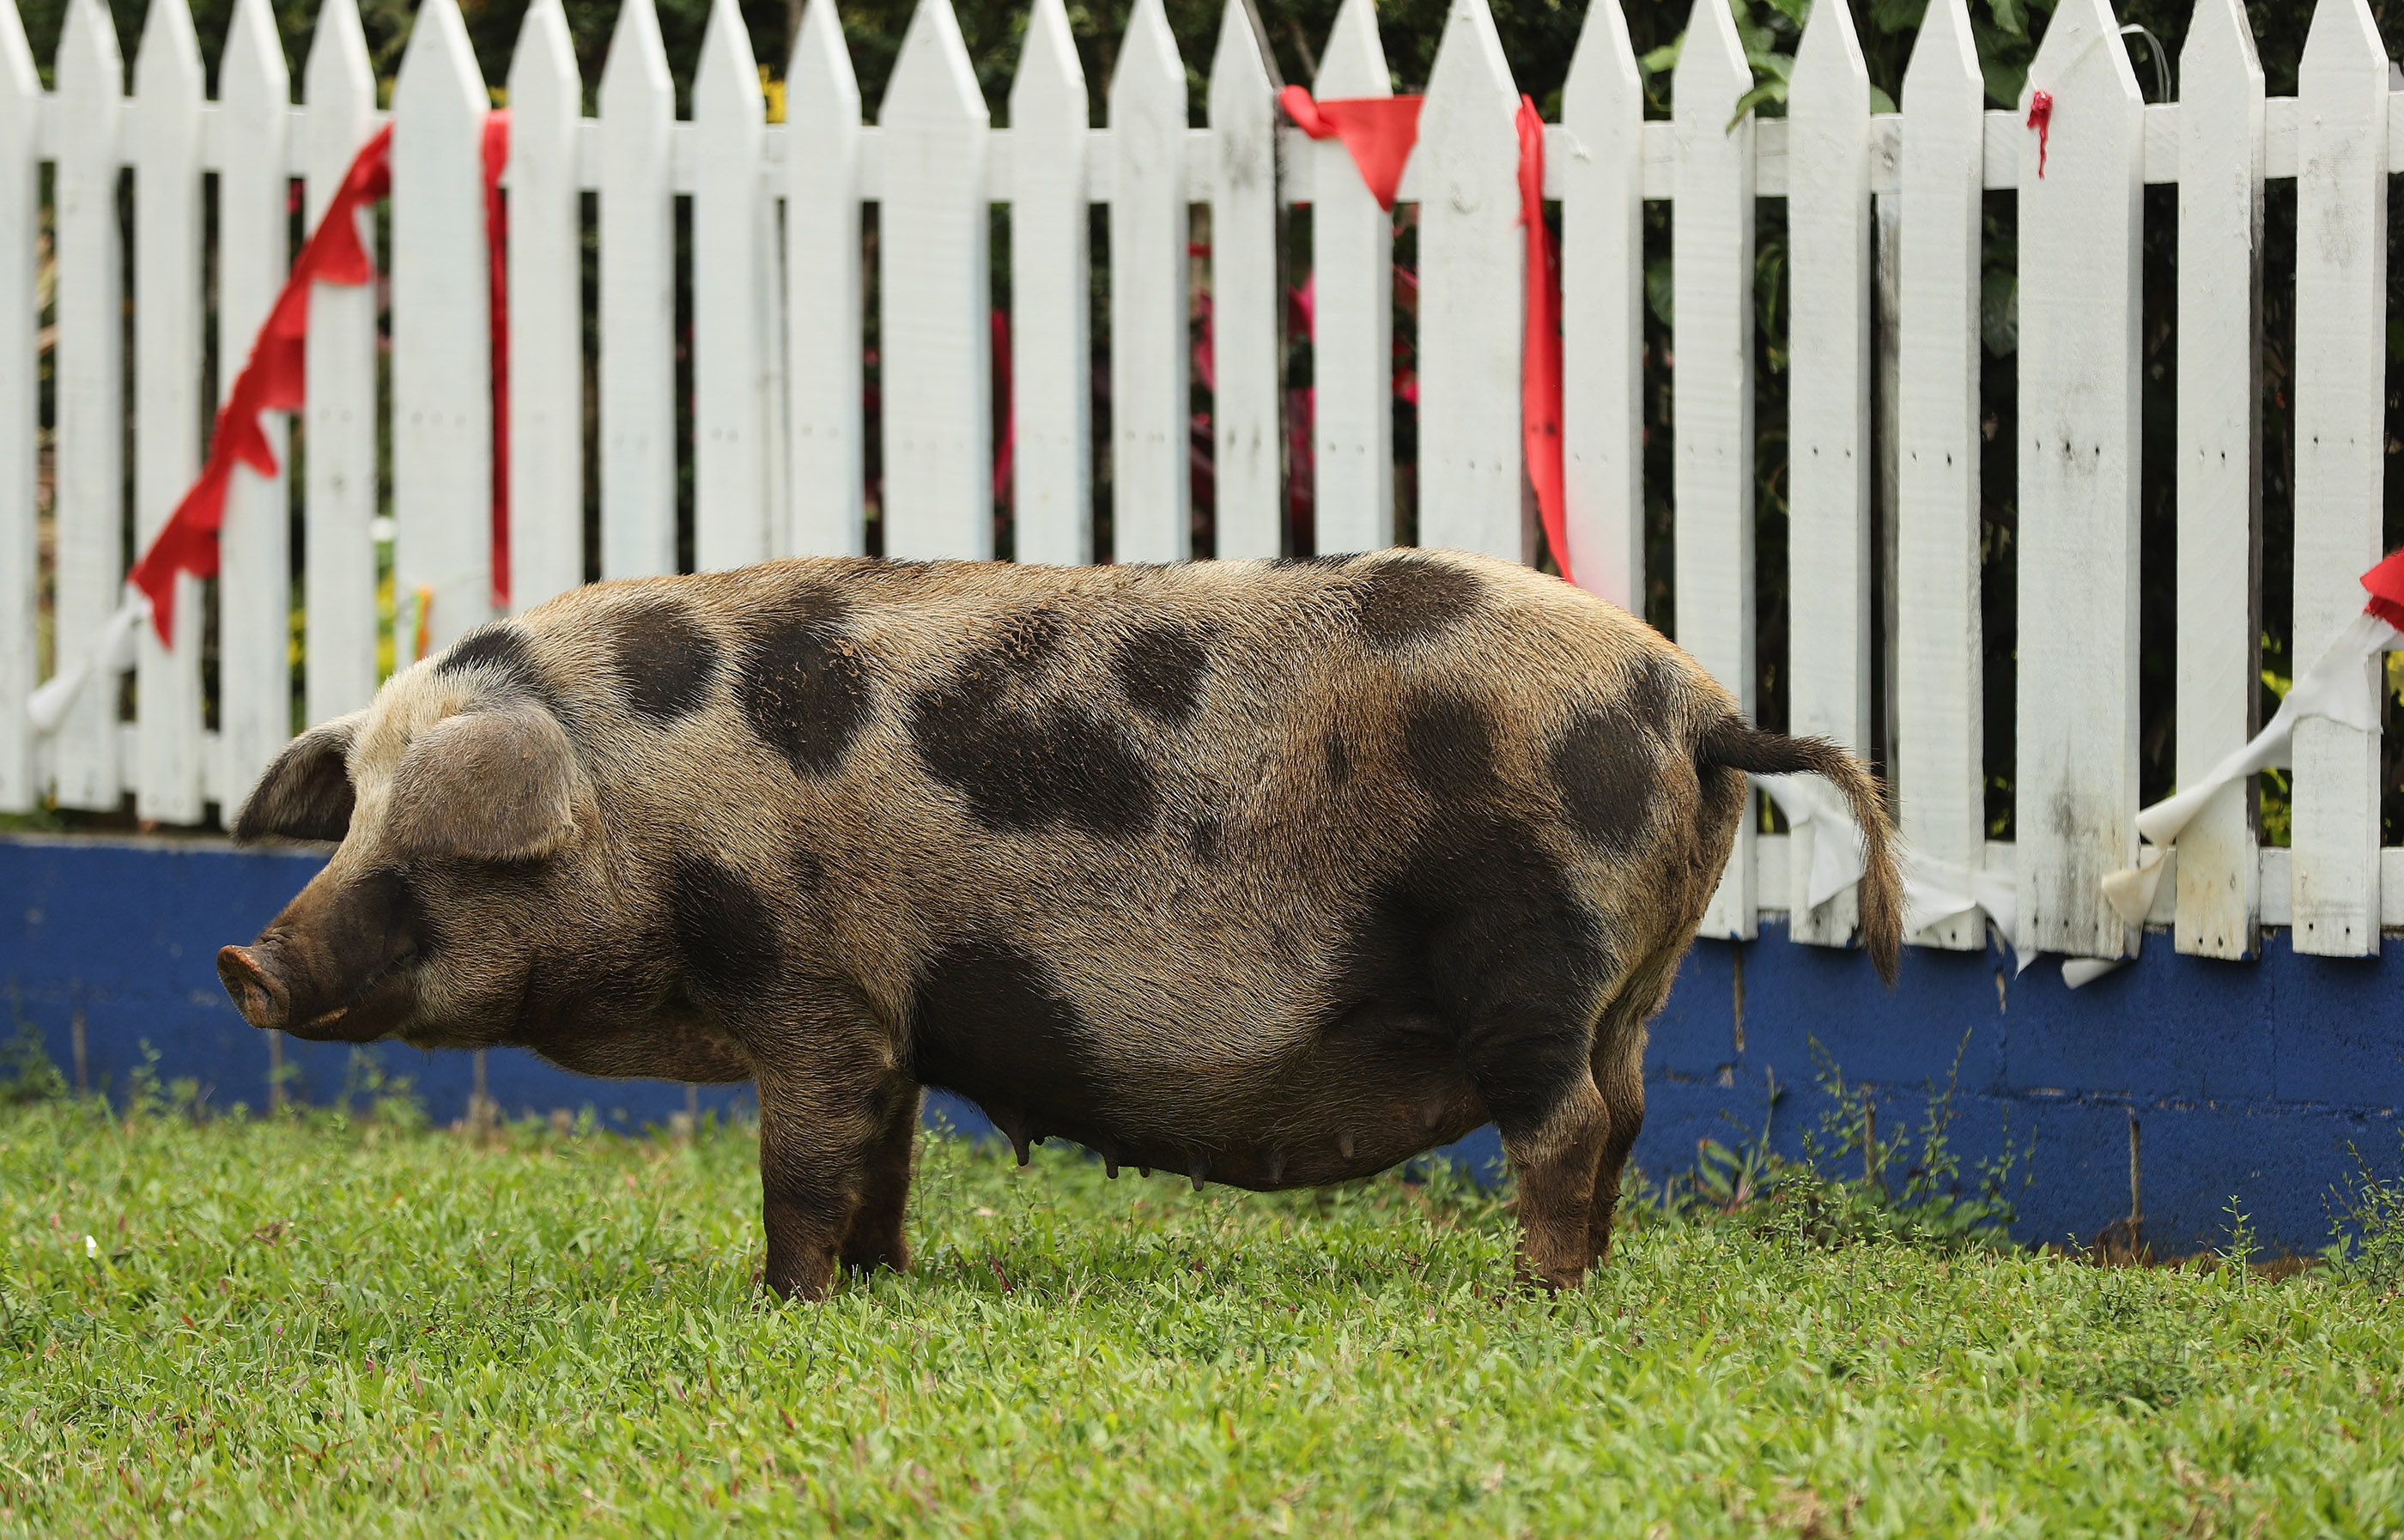 A pig wanders near a home in Tonga on May 23, 2019.